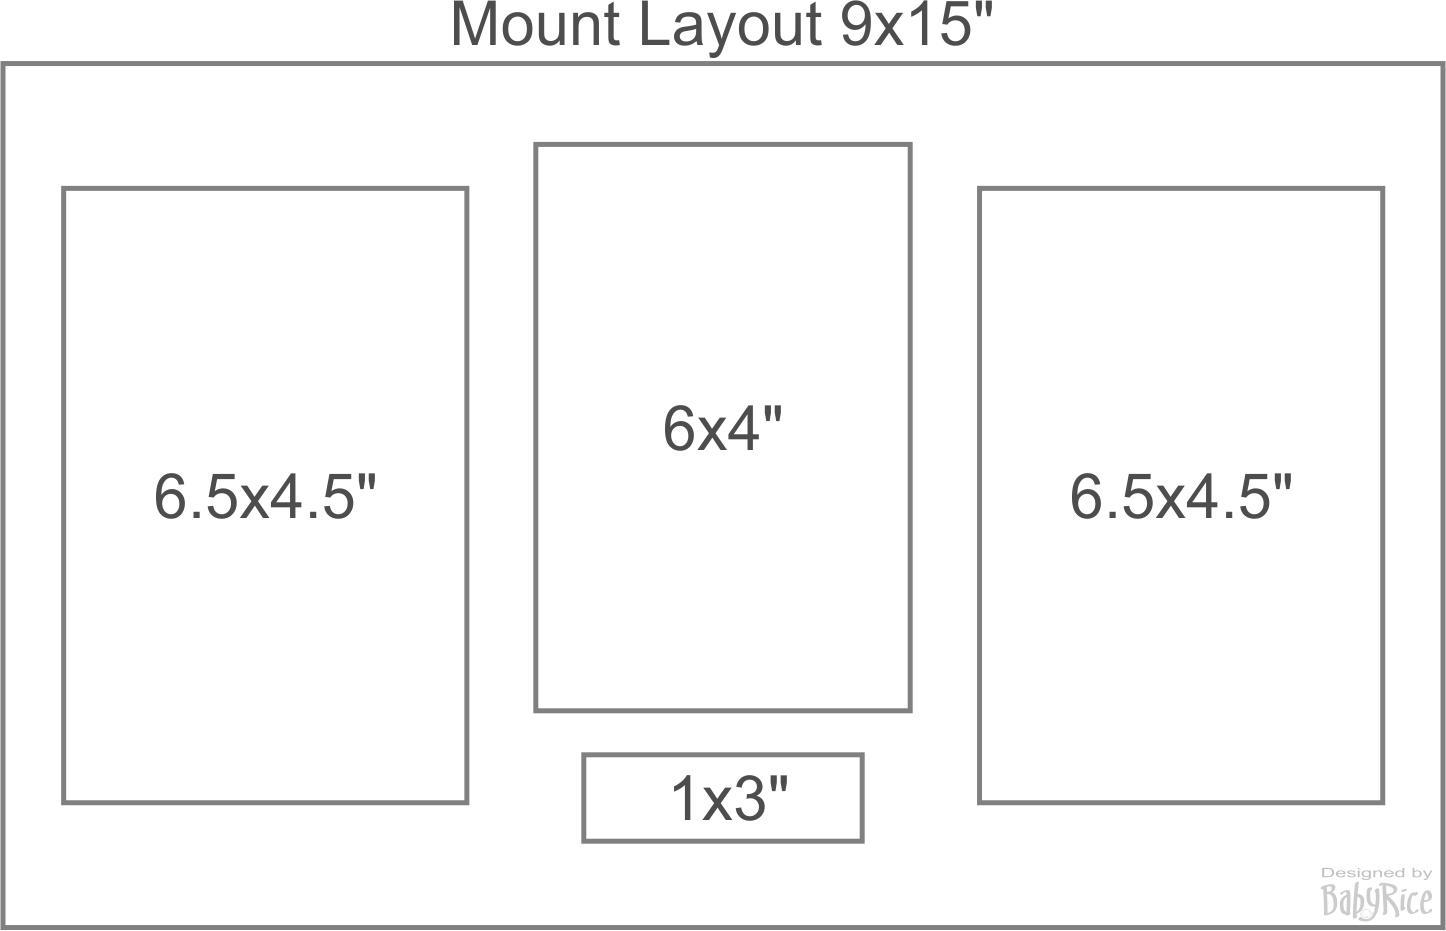 4 Hole Mount Specification